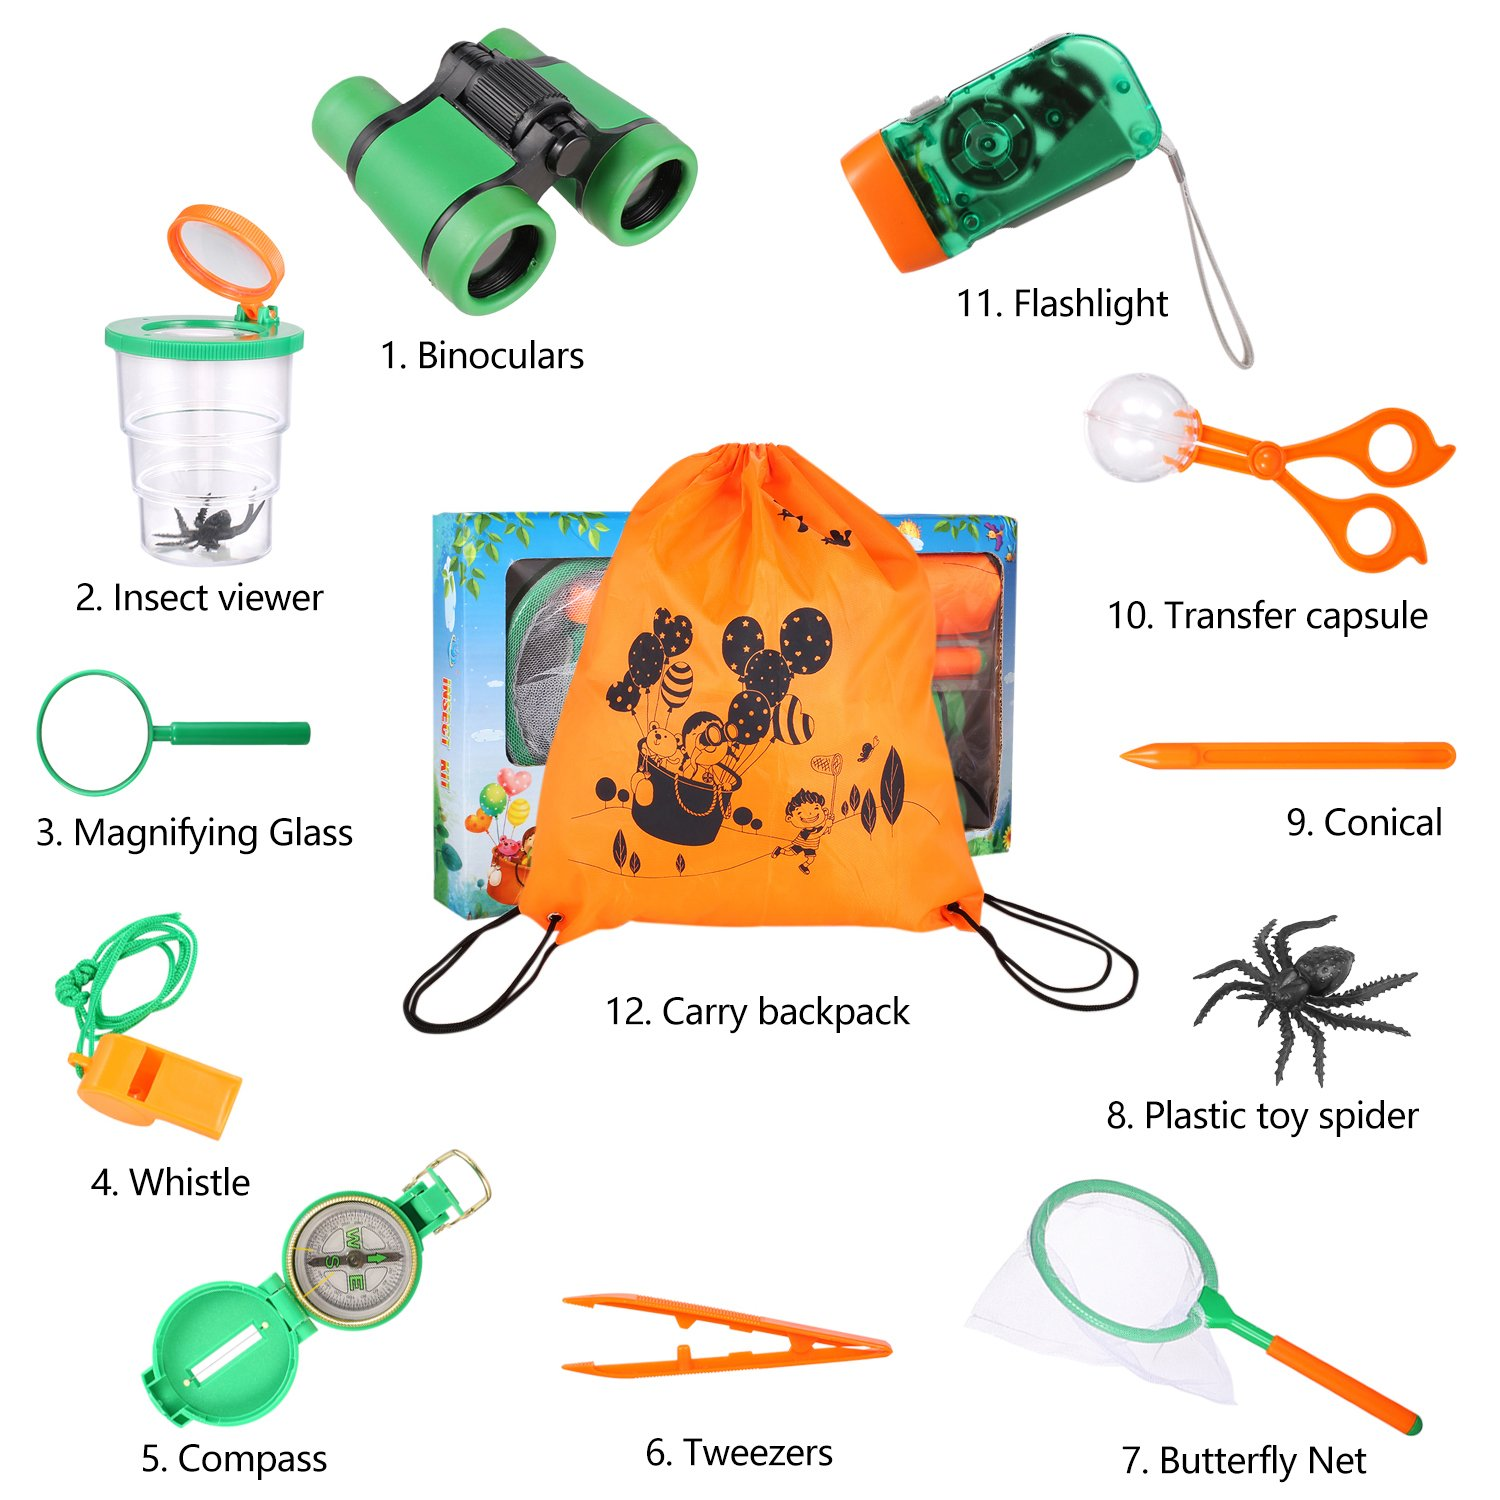 Outdoor Adventure Set for Kids - Explorer Kit, Educational Toys, Binoculars, Flashlight, Compass, Magnifying Glass, Butterfly Net, Tweezers, Bug Viewer, Whistle, Gift Set For Camping Hiking Backyard by Harlerbo (Image #7)